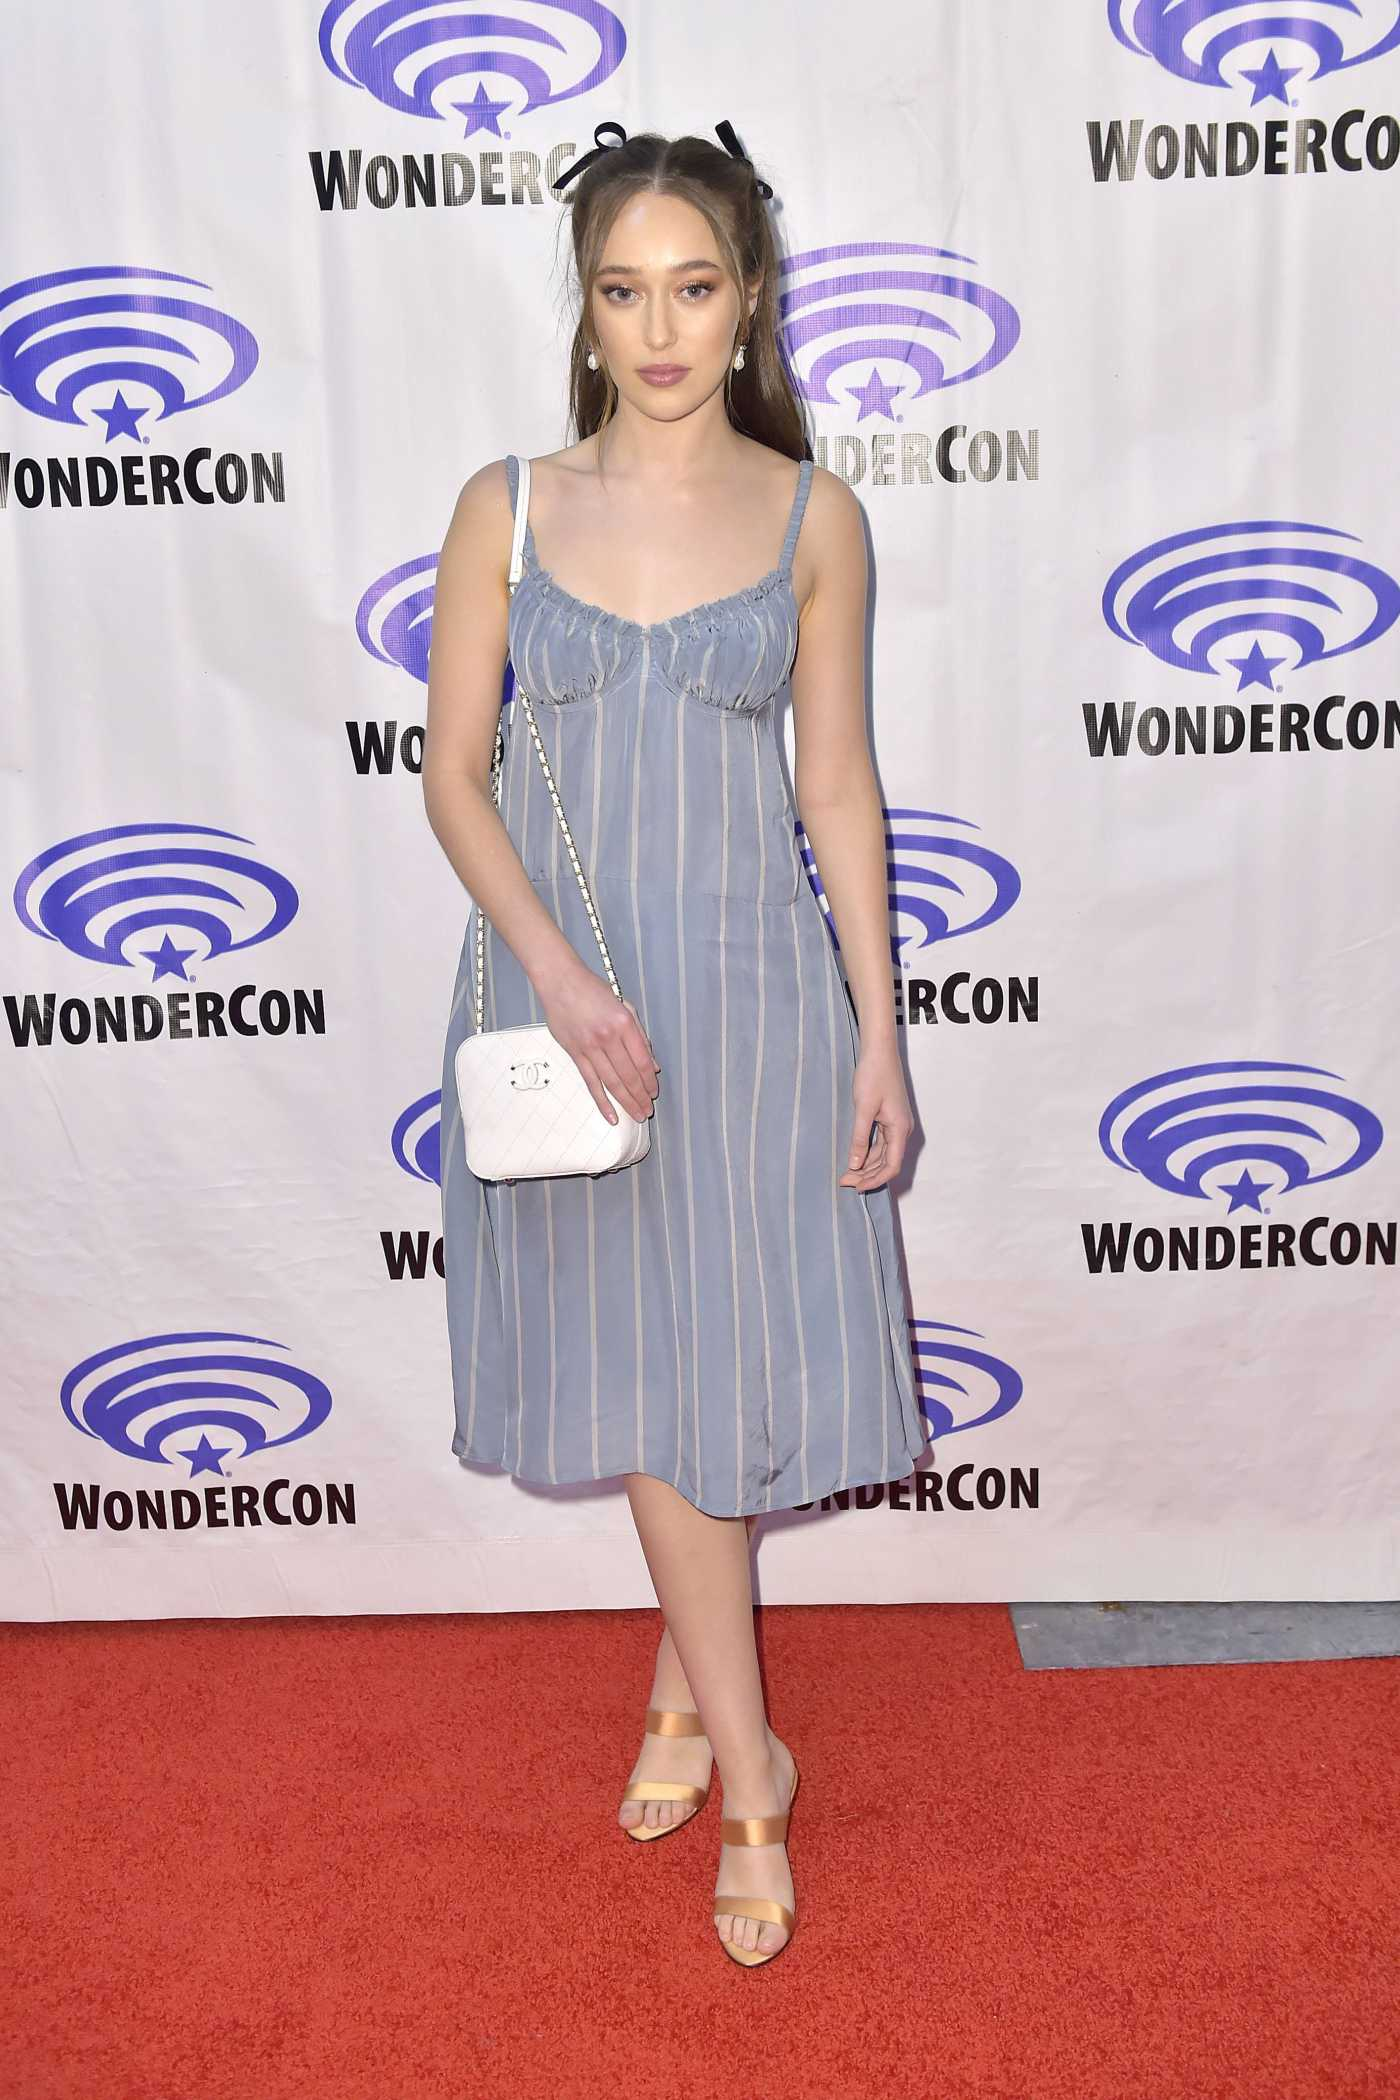 Alycia Debnam-Carey Attends the Fear the Walking Dead Panel During 2019 WonderCon in Anaheim 03/31/2019